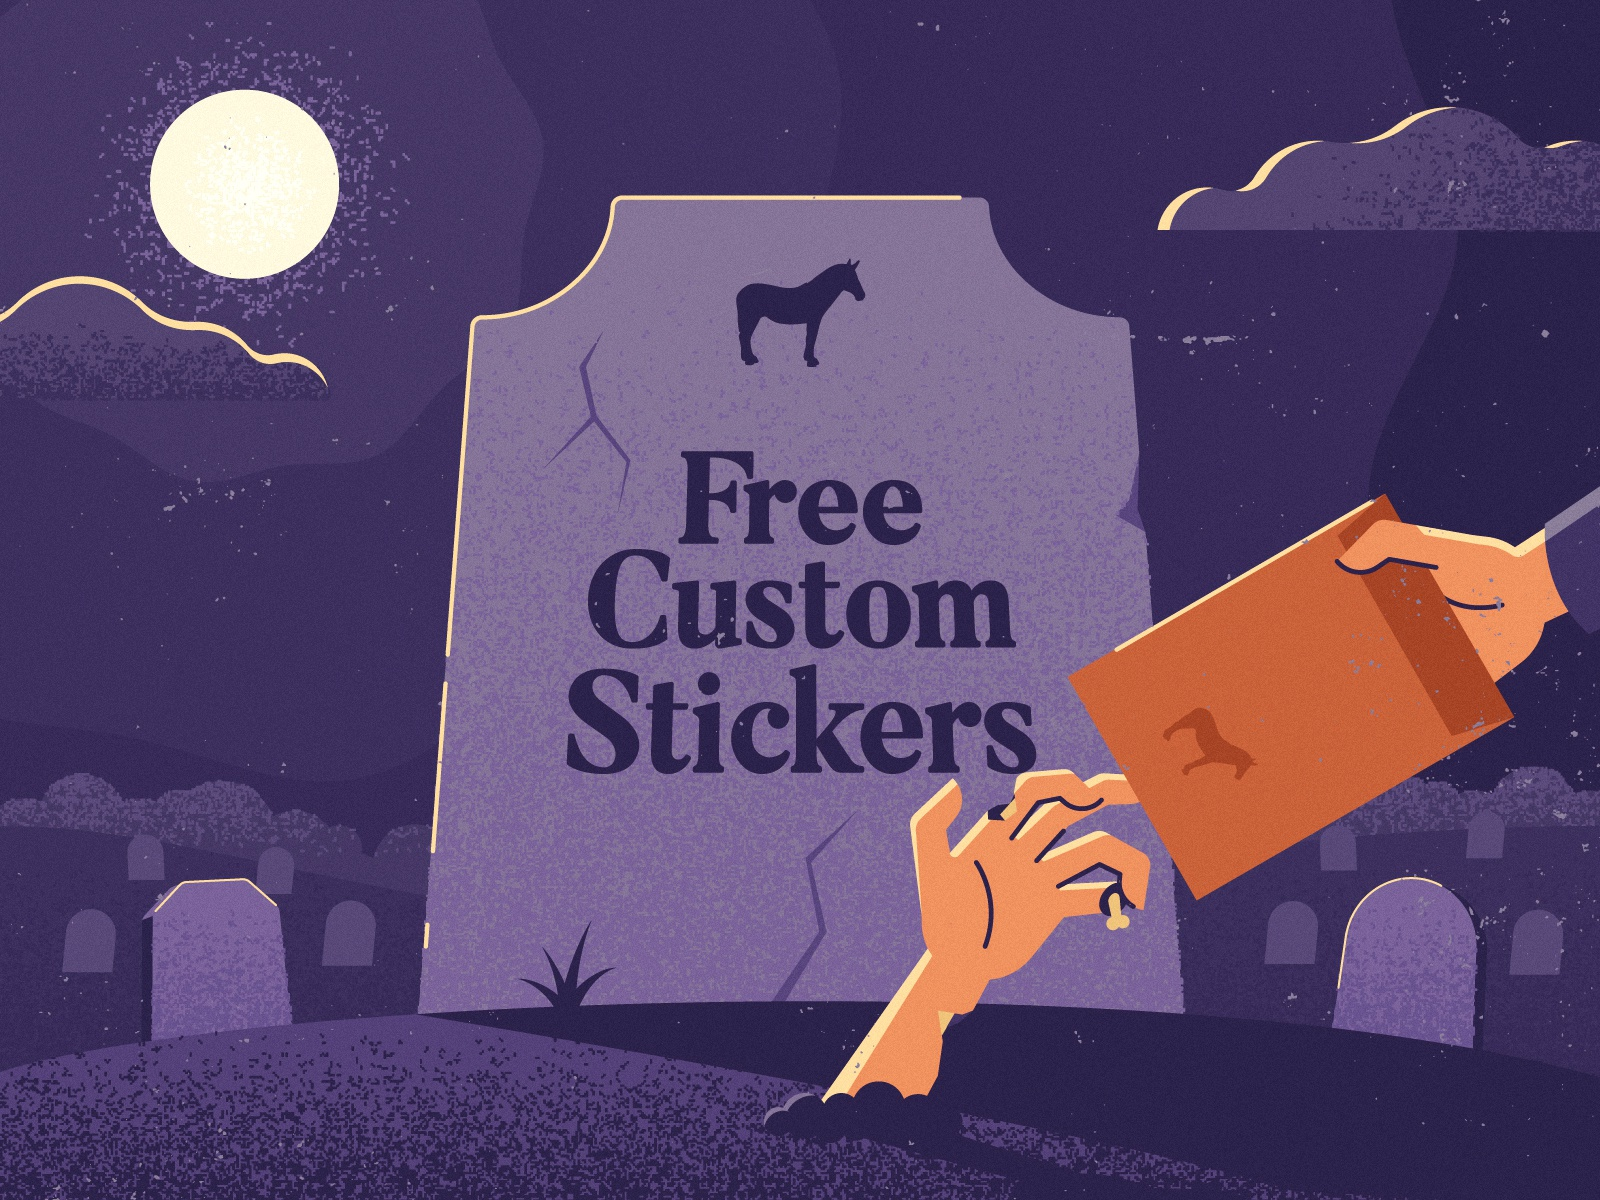 Free custom stickers for everyone